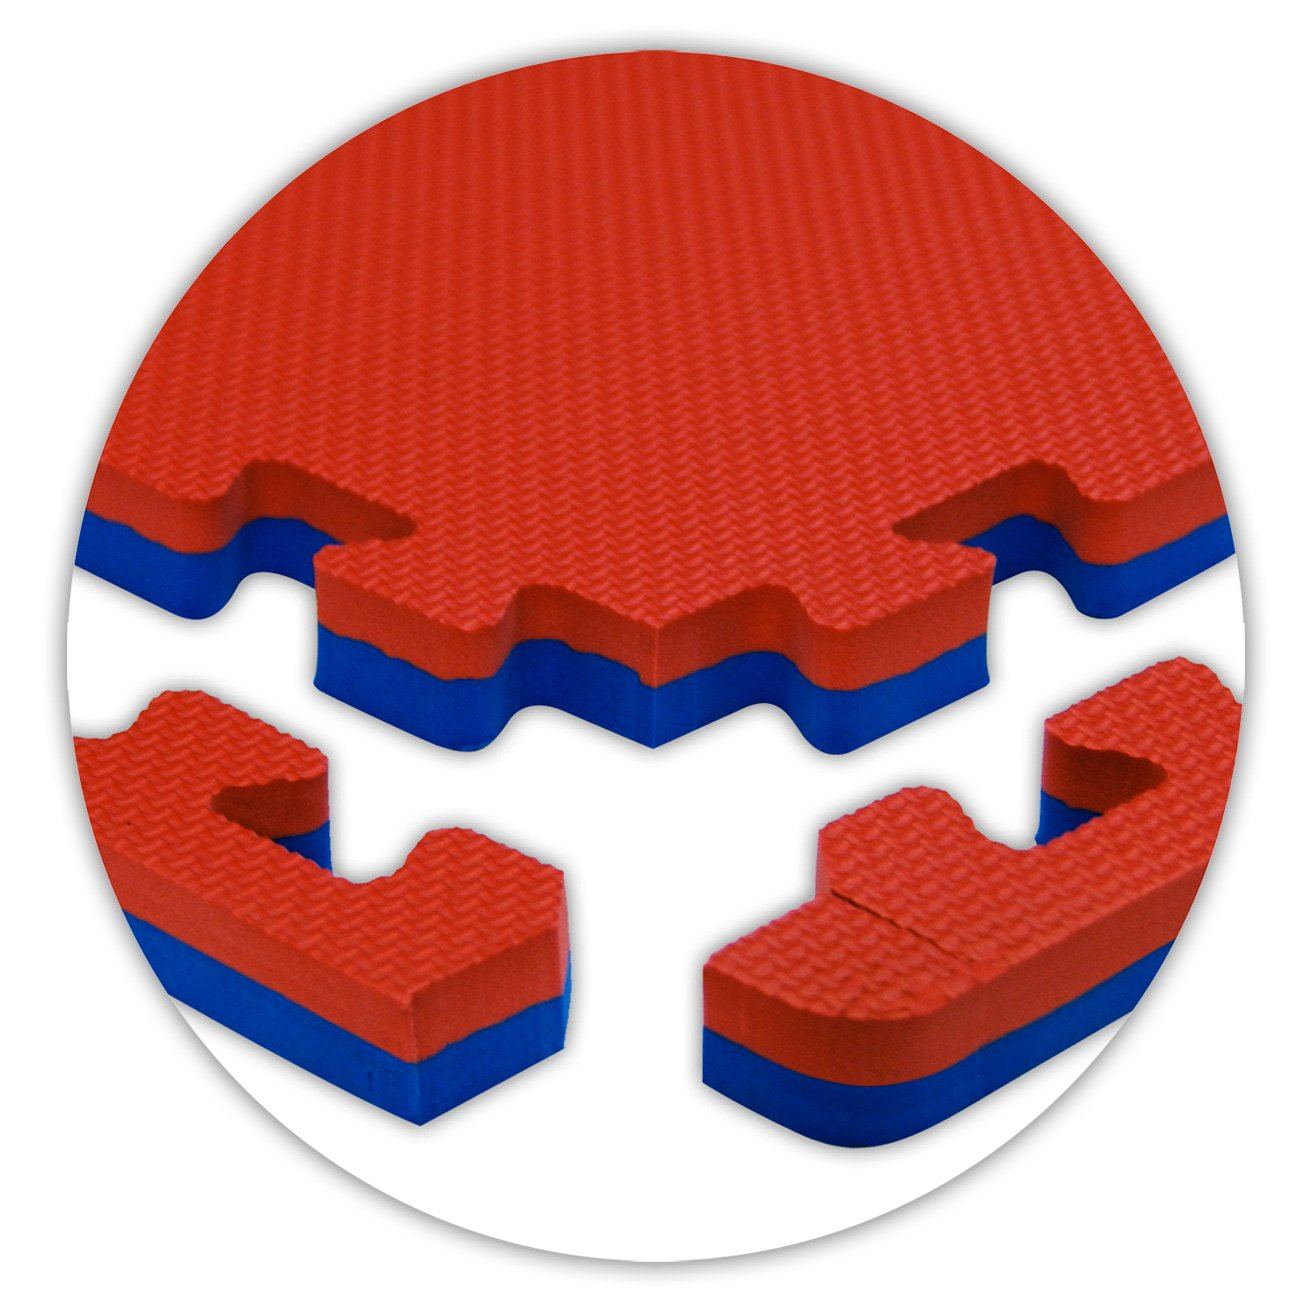 American Floor Mats Jumbo Reversible 7/8'' Thickness Red/Blue 6' x 10' (Set 15 Tiles Total) SoftFloors Interlocking Tiles